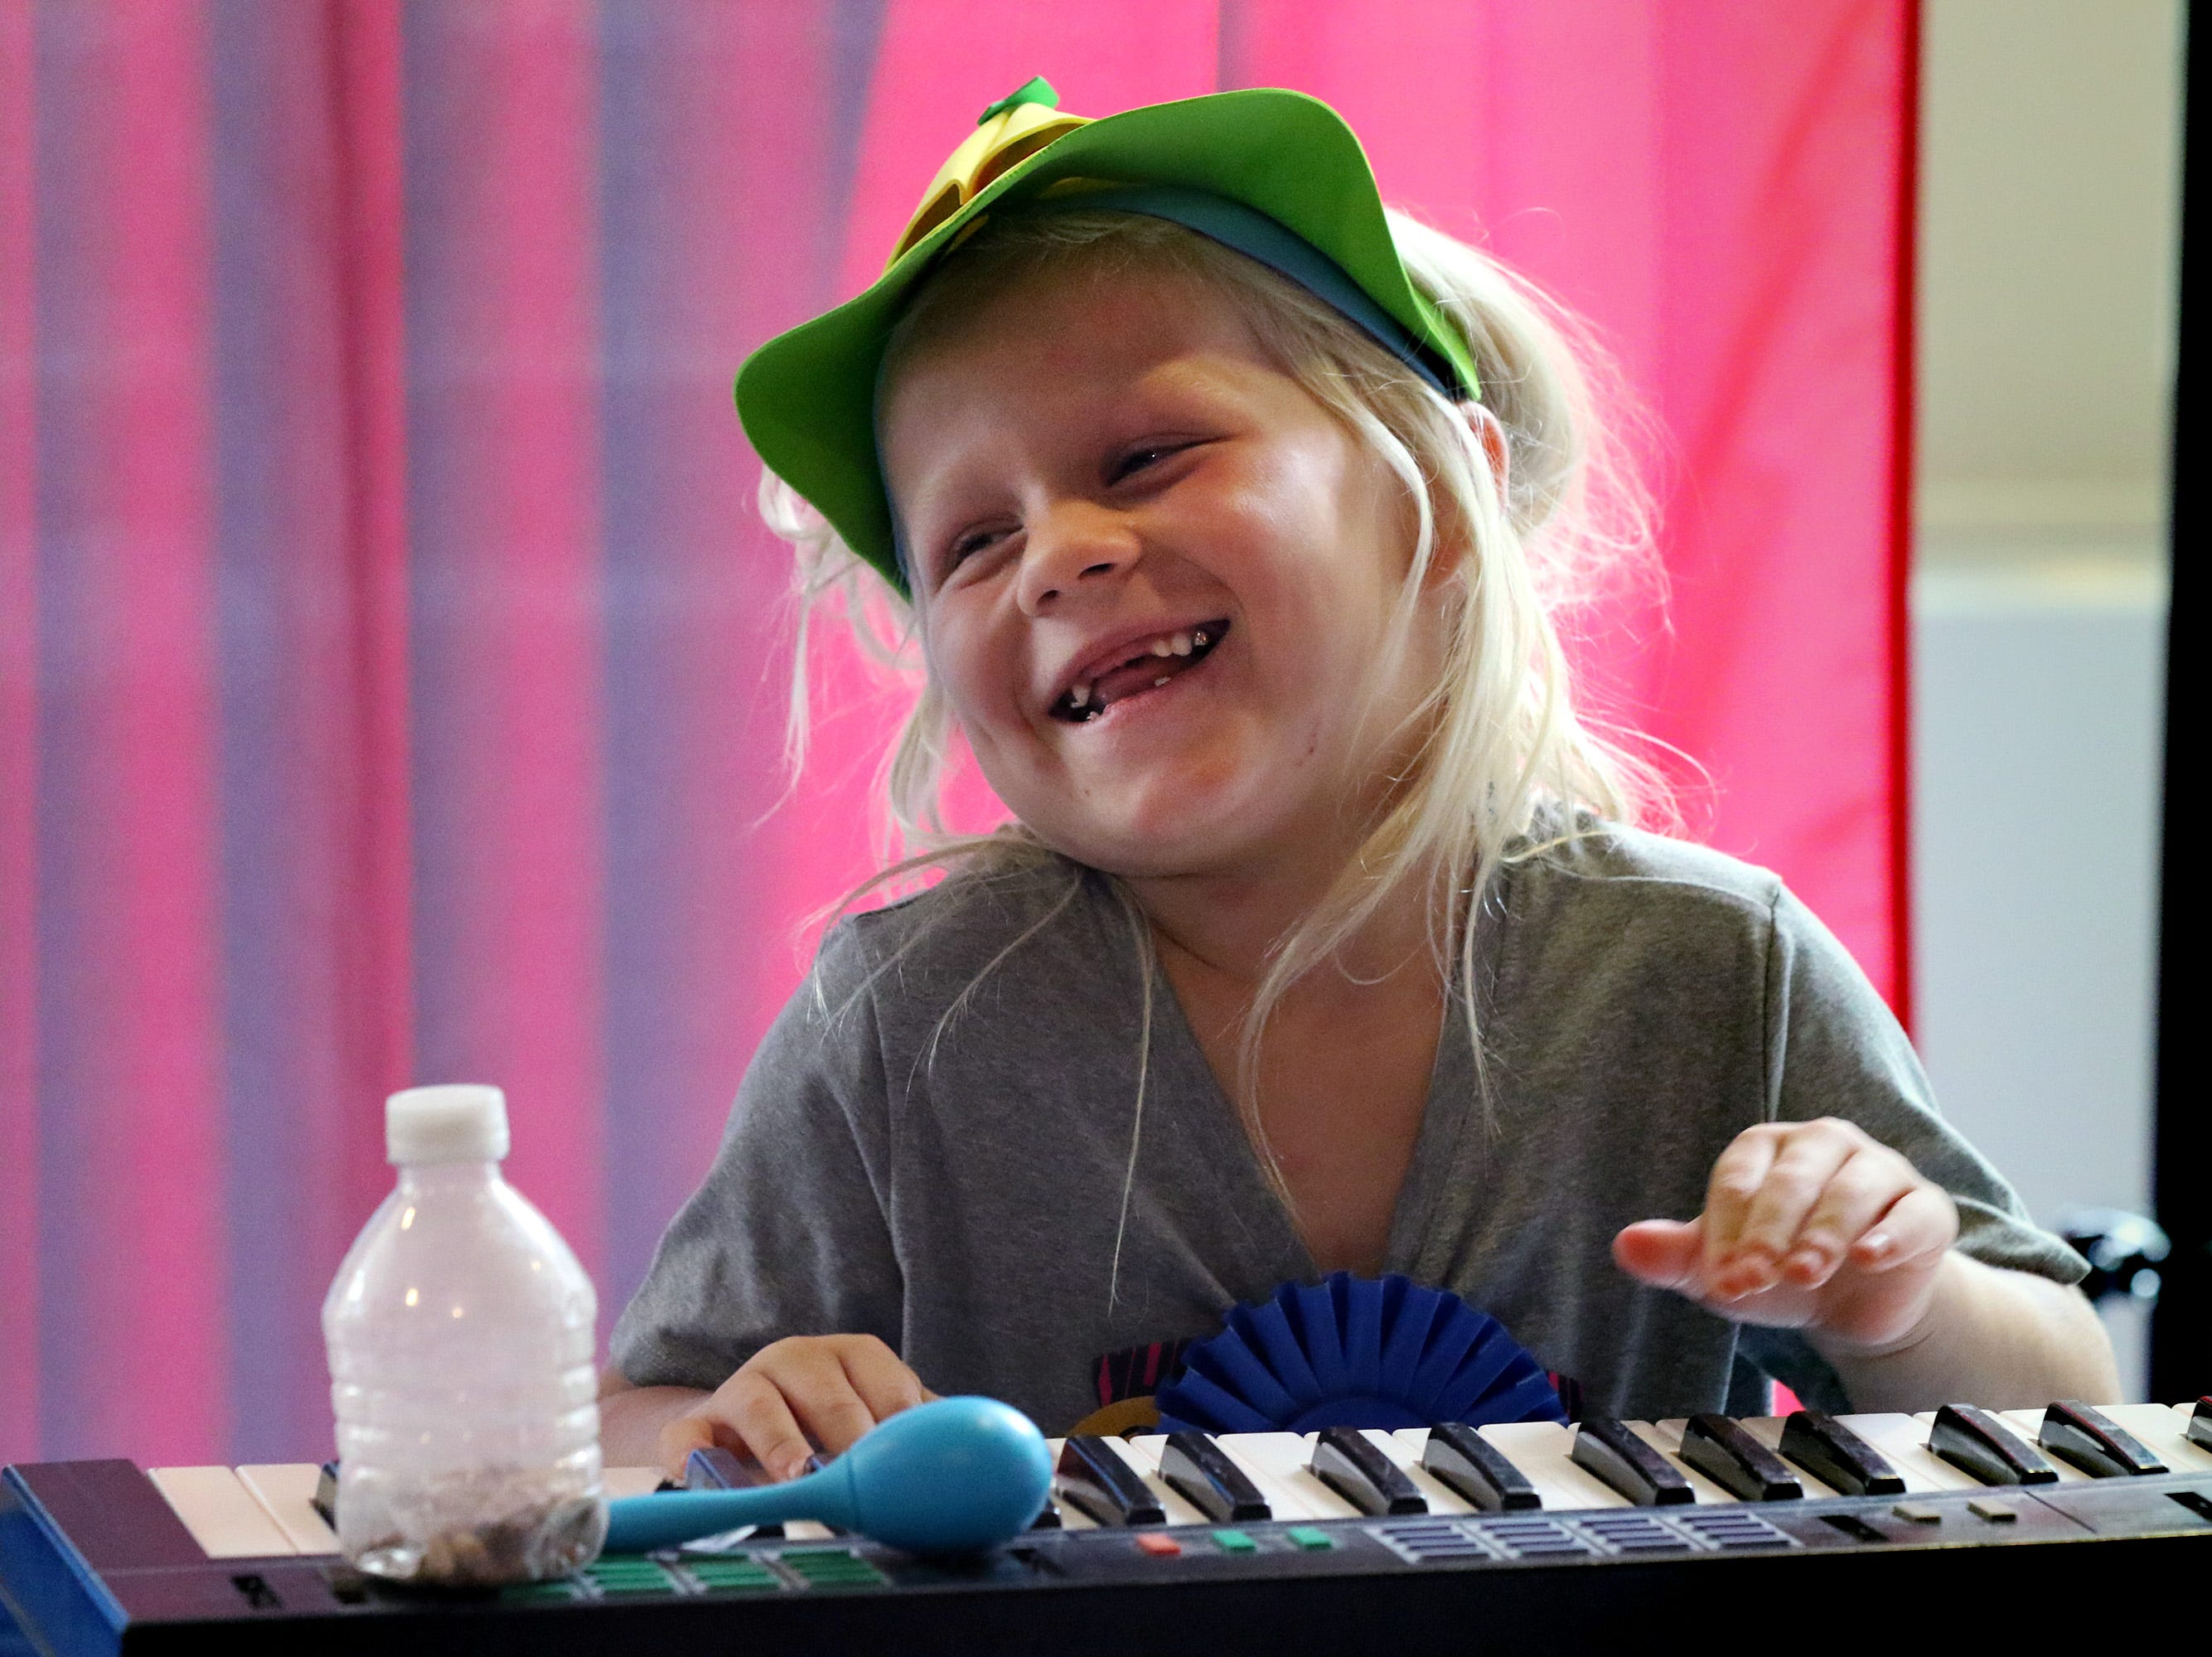 Skyler Mueller of Juneau plays piano in an all-kids band as a part of Nick's All Kid Show during State Fair at Children's Hospital on Aug. 7.